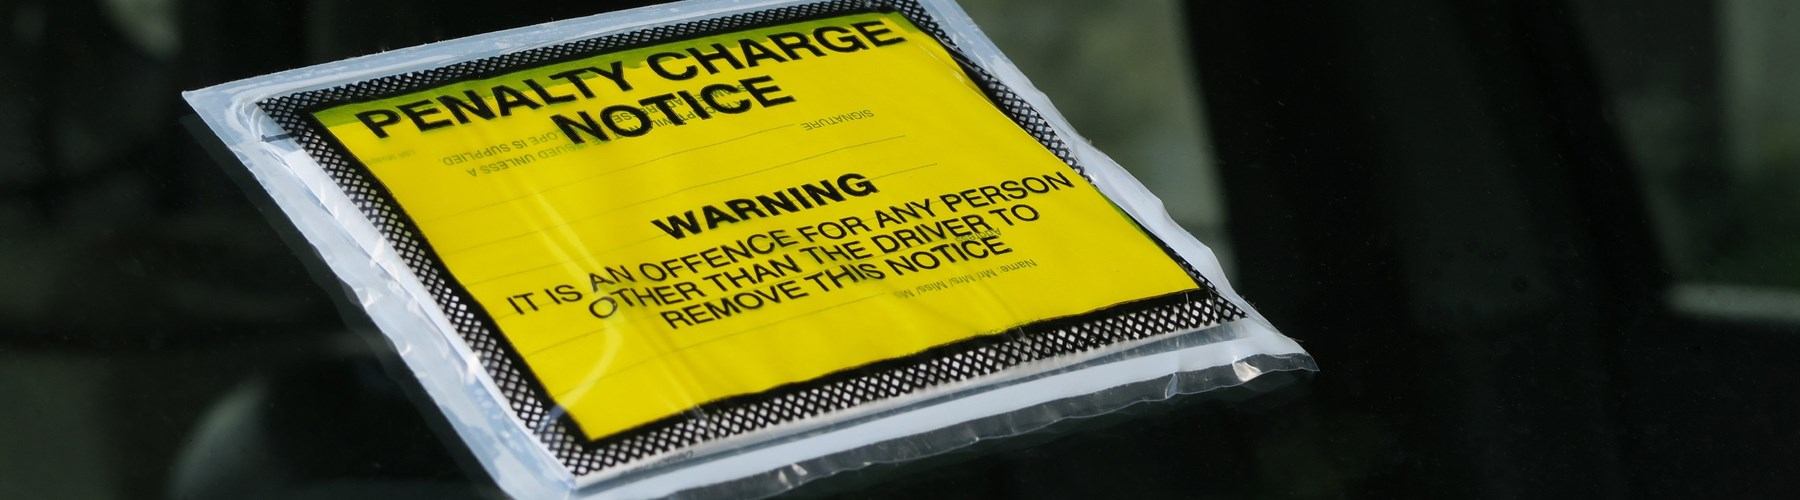 Penalty charge notice on car windshield